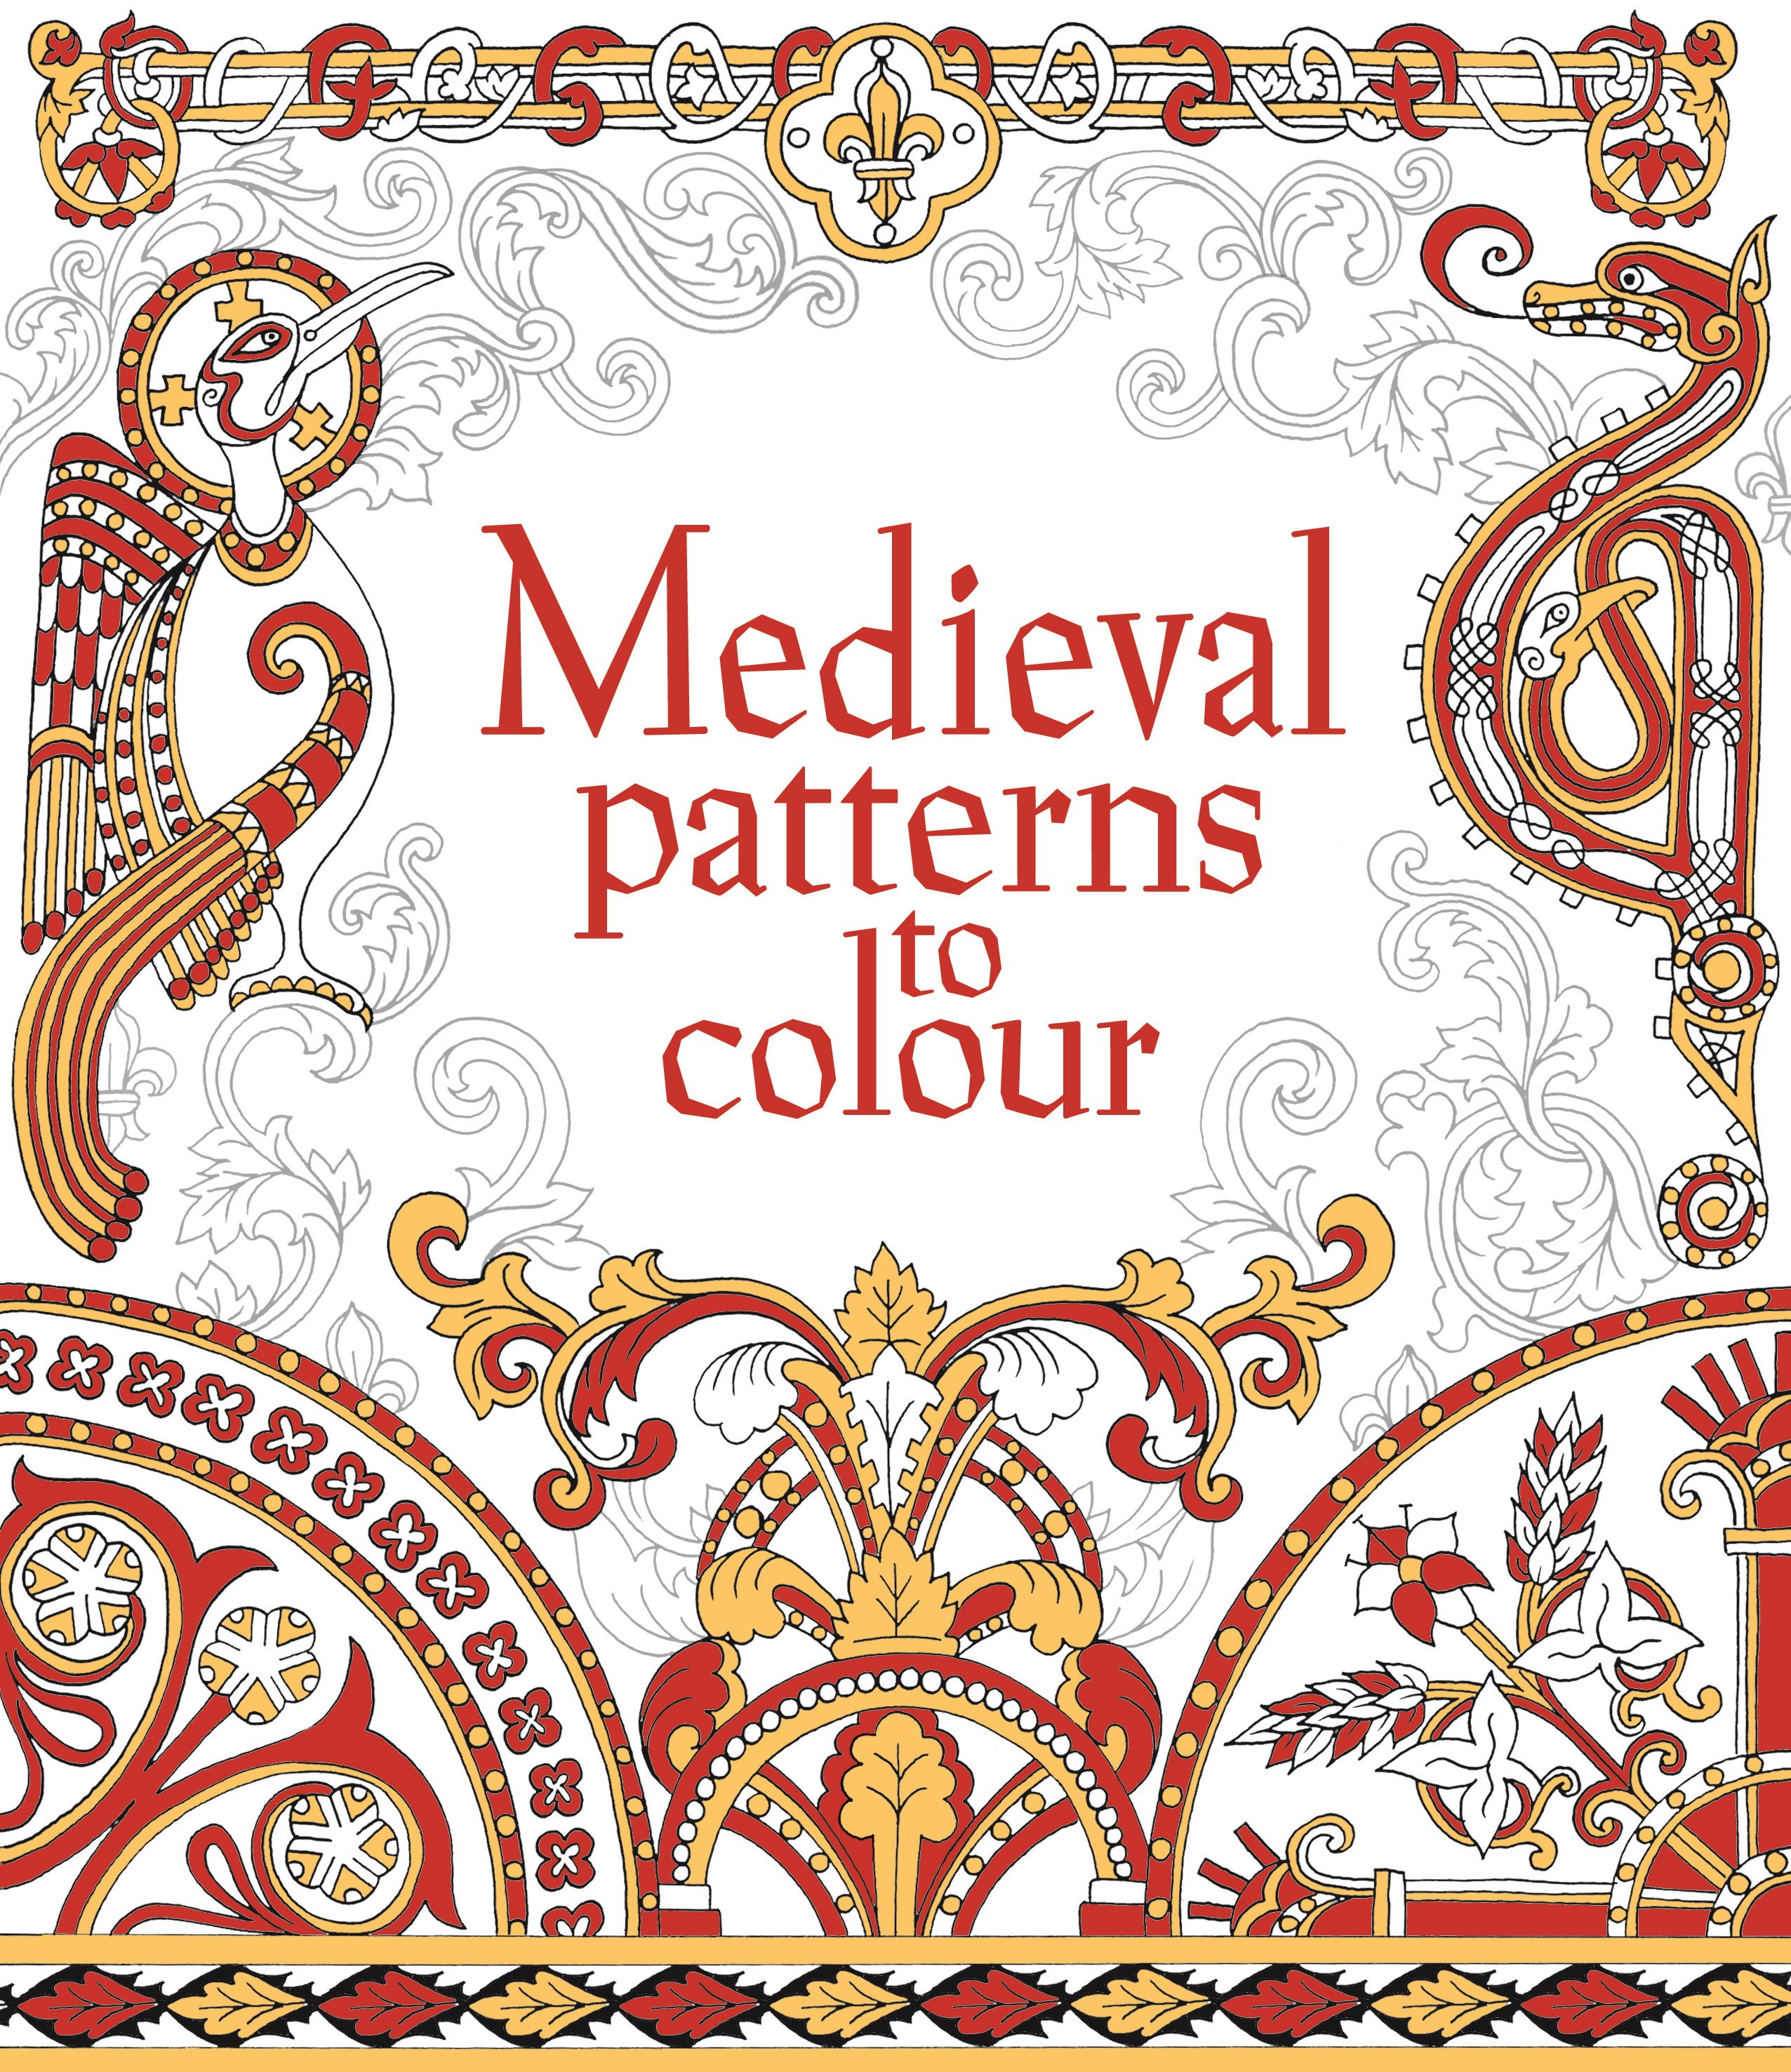 u201cmedieval patterns to colour u201d at usborne books at home